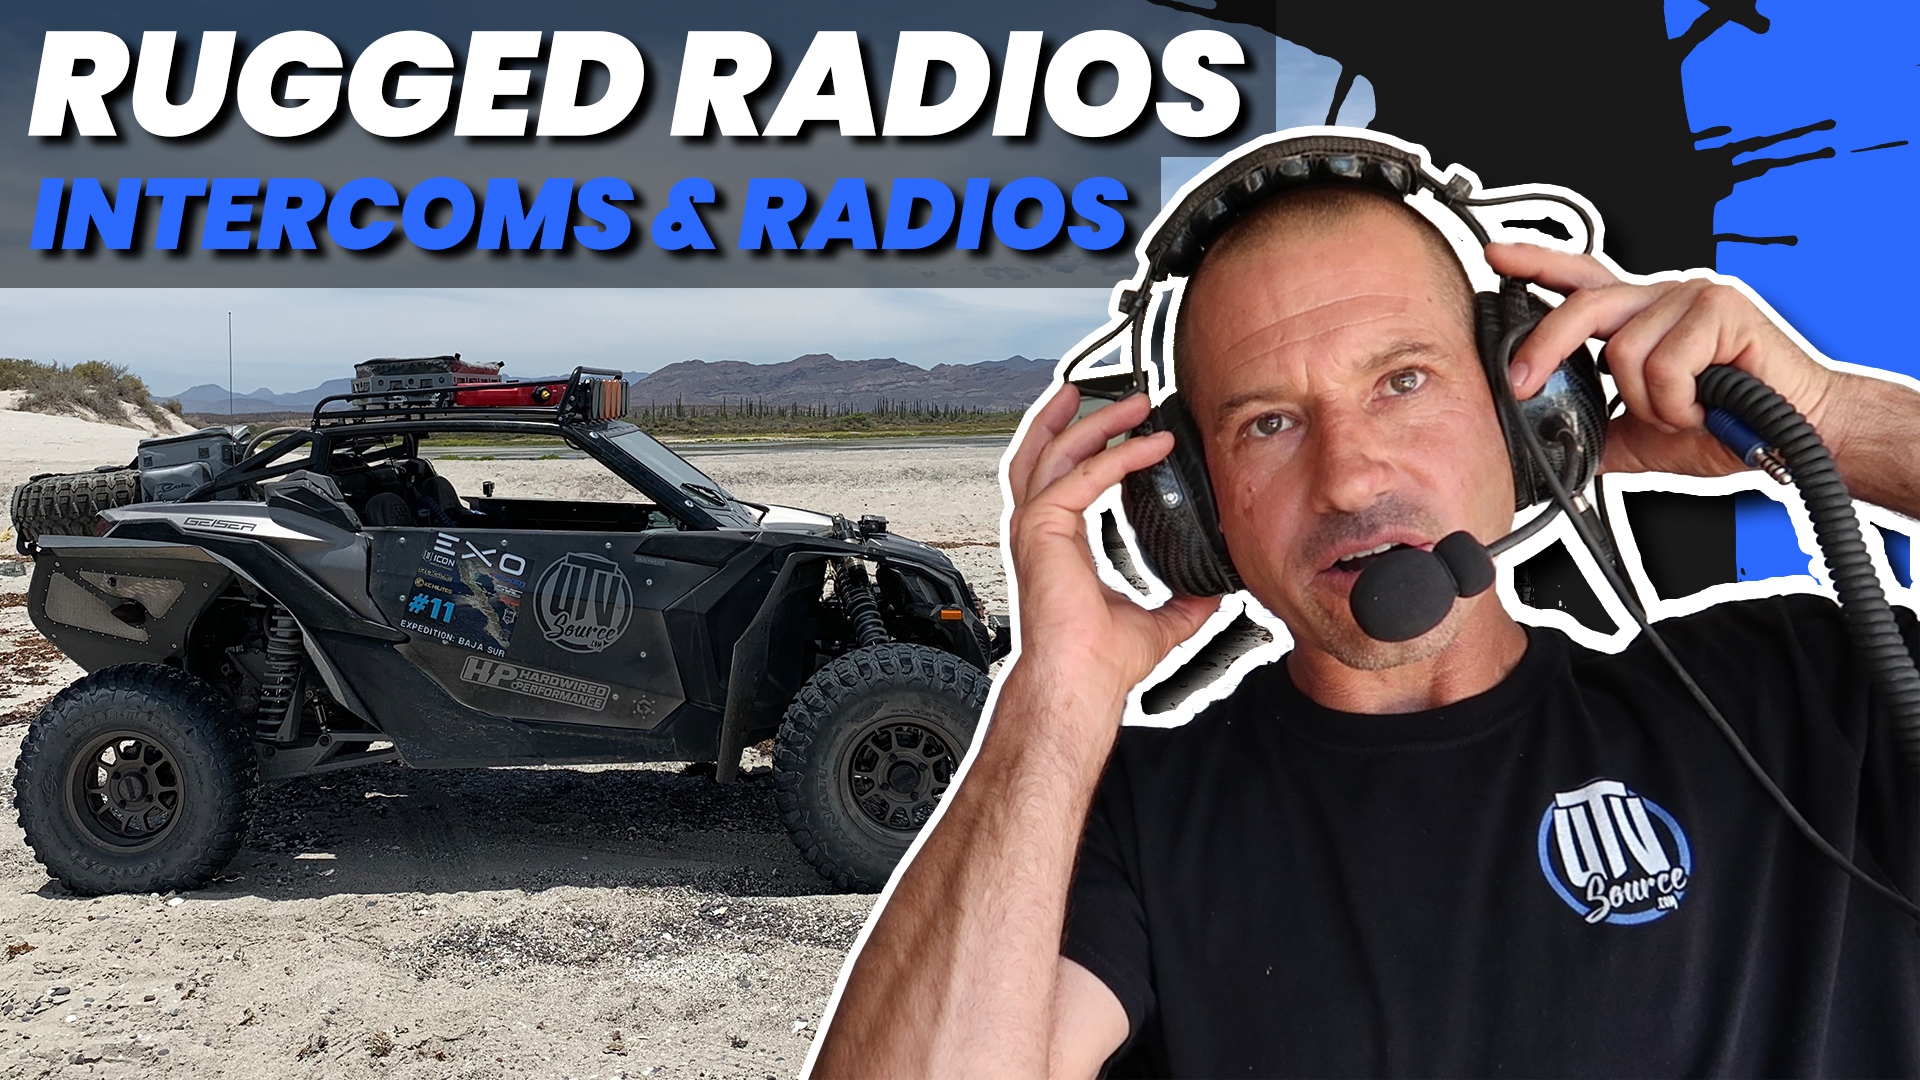 Includes Behind the Head Headsets and Intercom Cables Rugged Radios RRP362 Intercom 2 Place Kit with Built-In Push to Talk Buttons